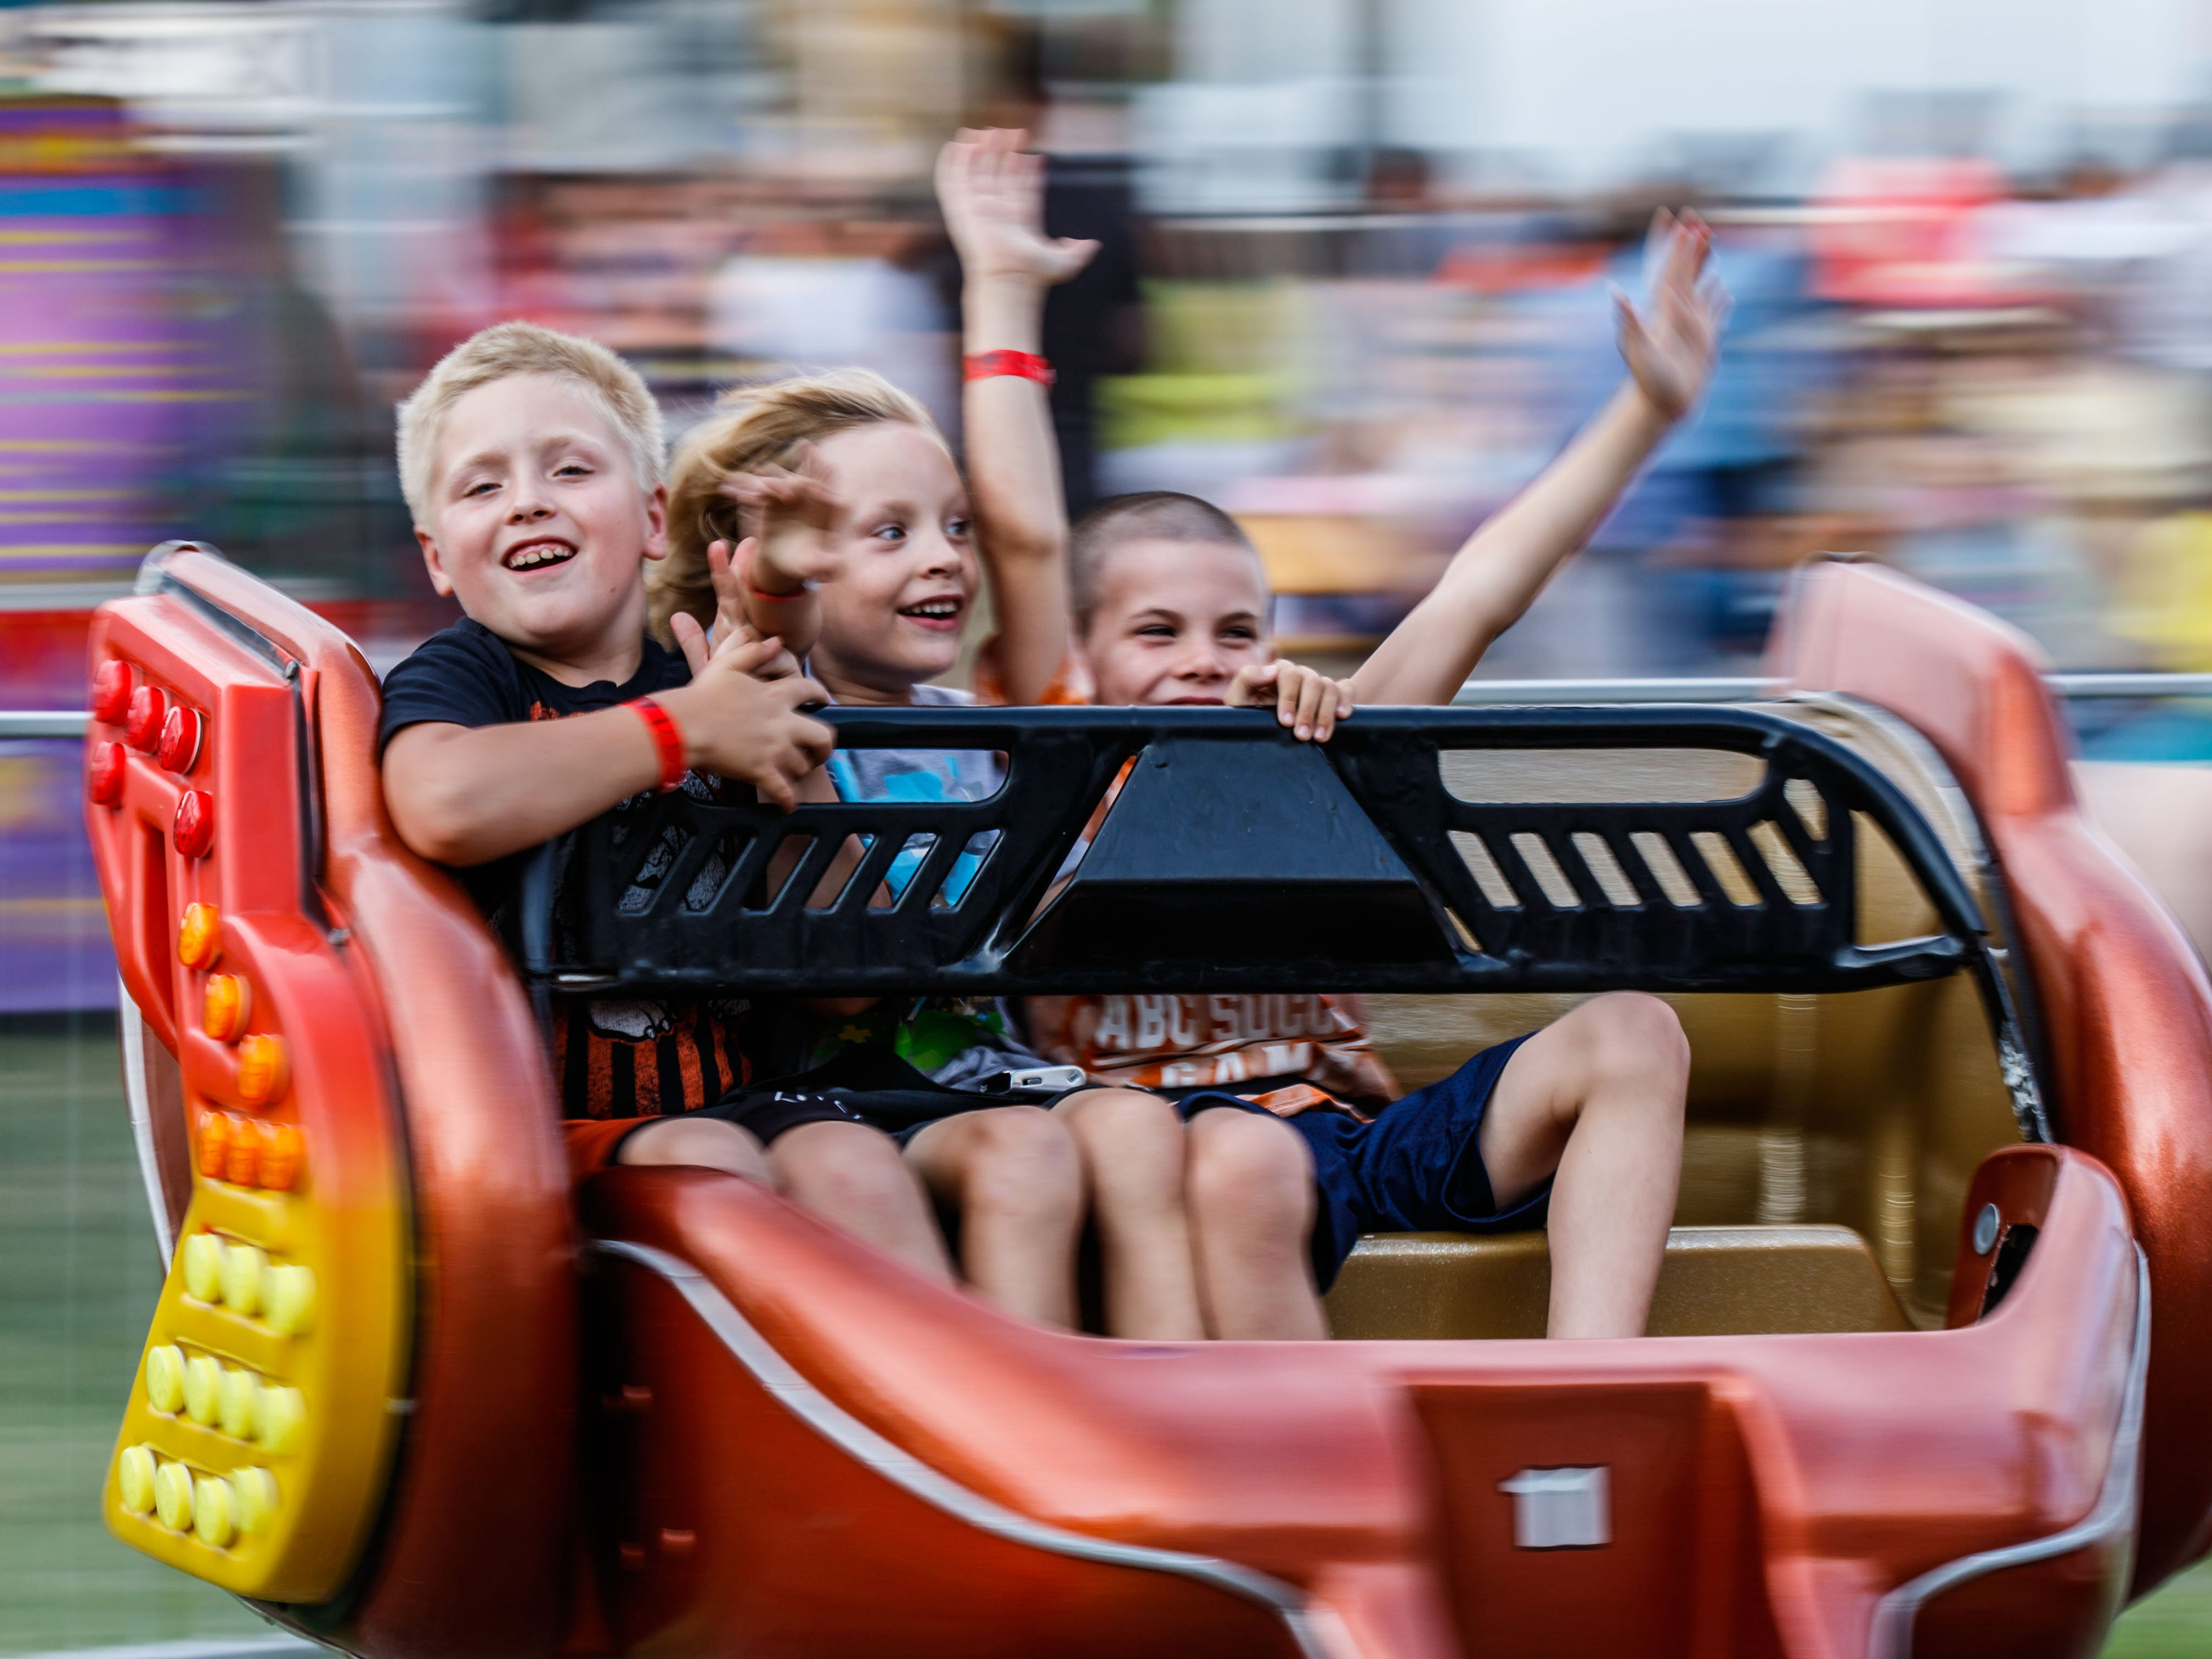 Eli Wilhelme, 7, Jackson Loomis, 6, and Boden Gartman, 8, all of Cedarburg, spin round on a carnival ride at the Ozaukee County Fair in Cedarburg on Wednesday, August 1, 2018.